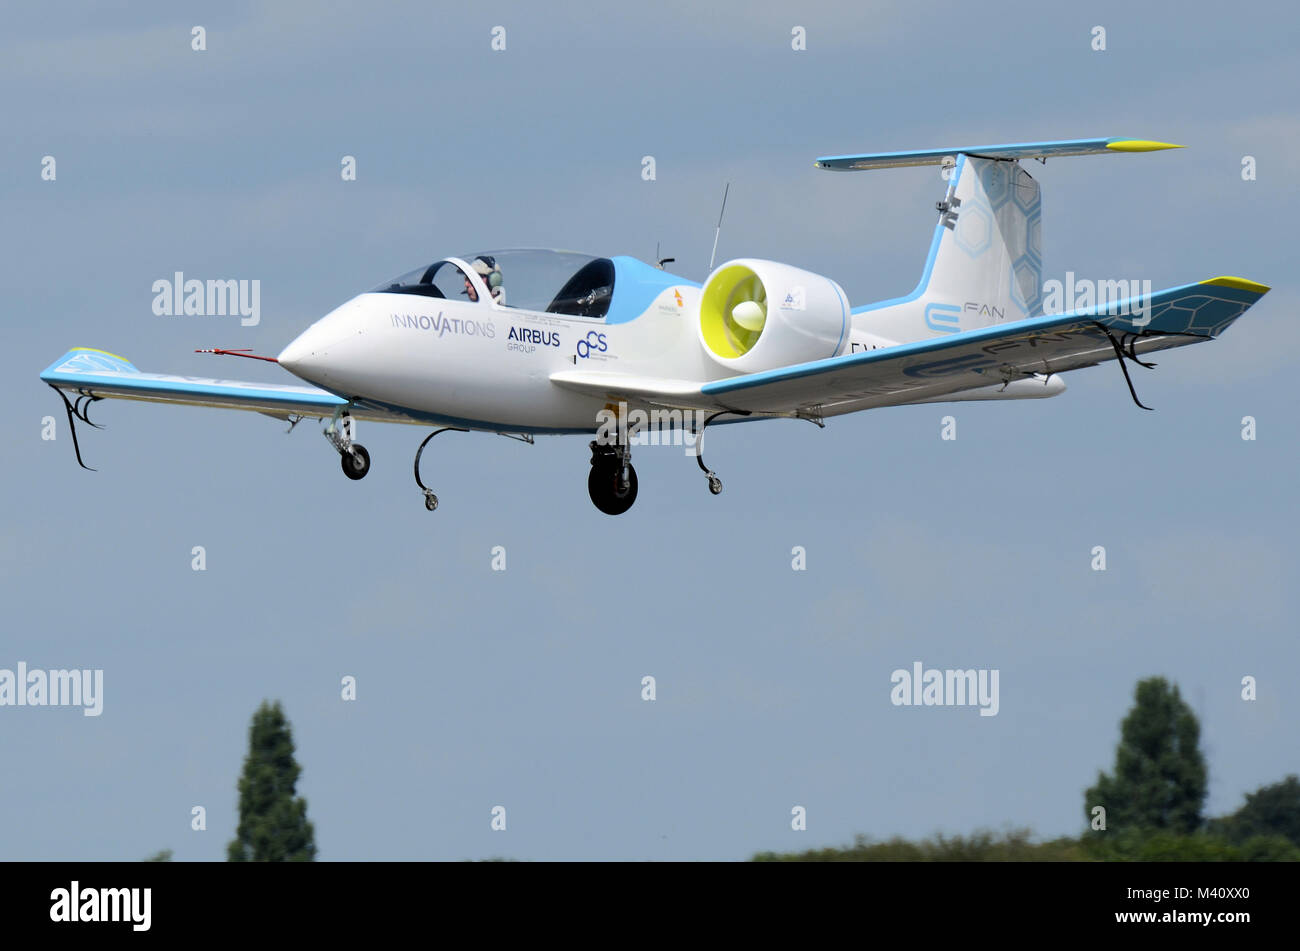 Airbus E-Fan is a prototype two-seat electric aircraft being developed by Airbus Group. Flying at the Farnborough - Stock Image